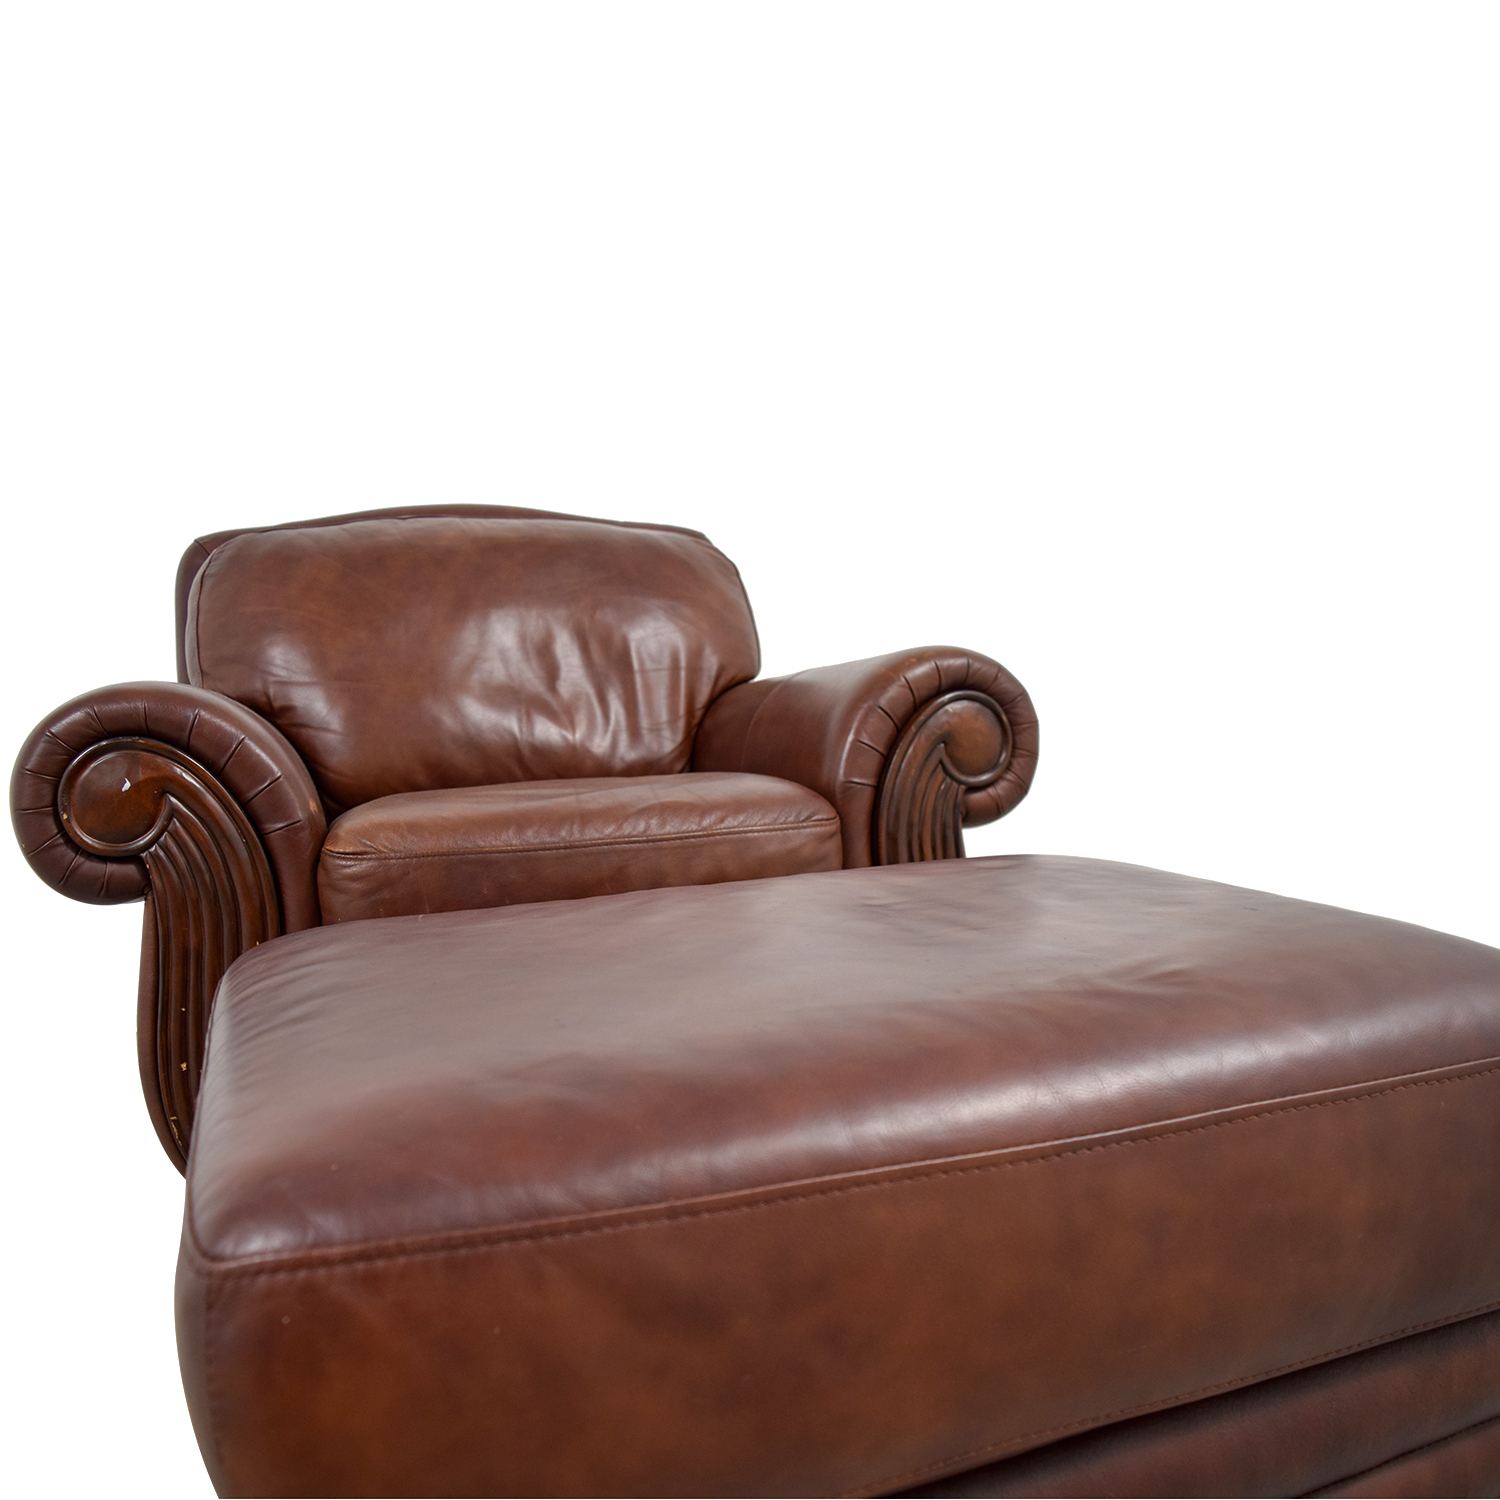 accent chairs to go with brown leather sofa empire sofology 54 off rooms chair and